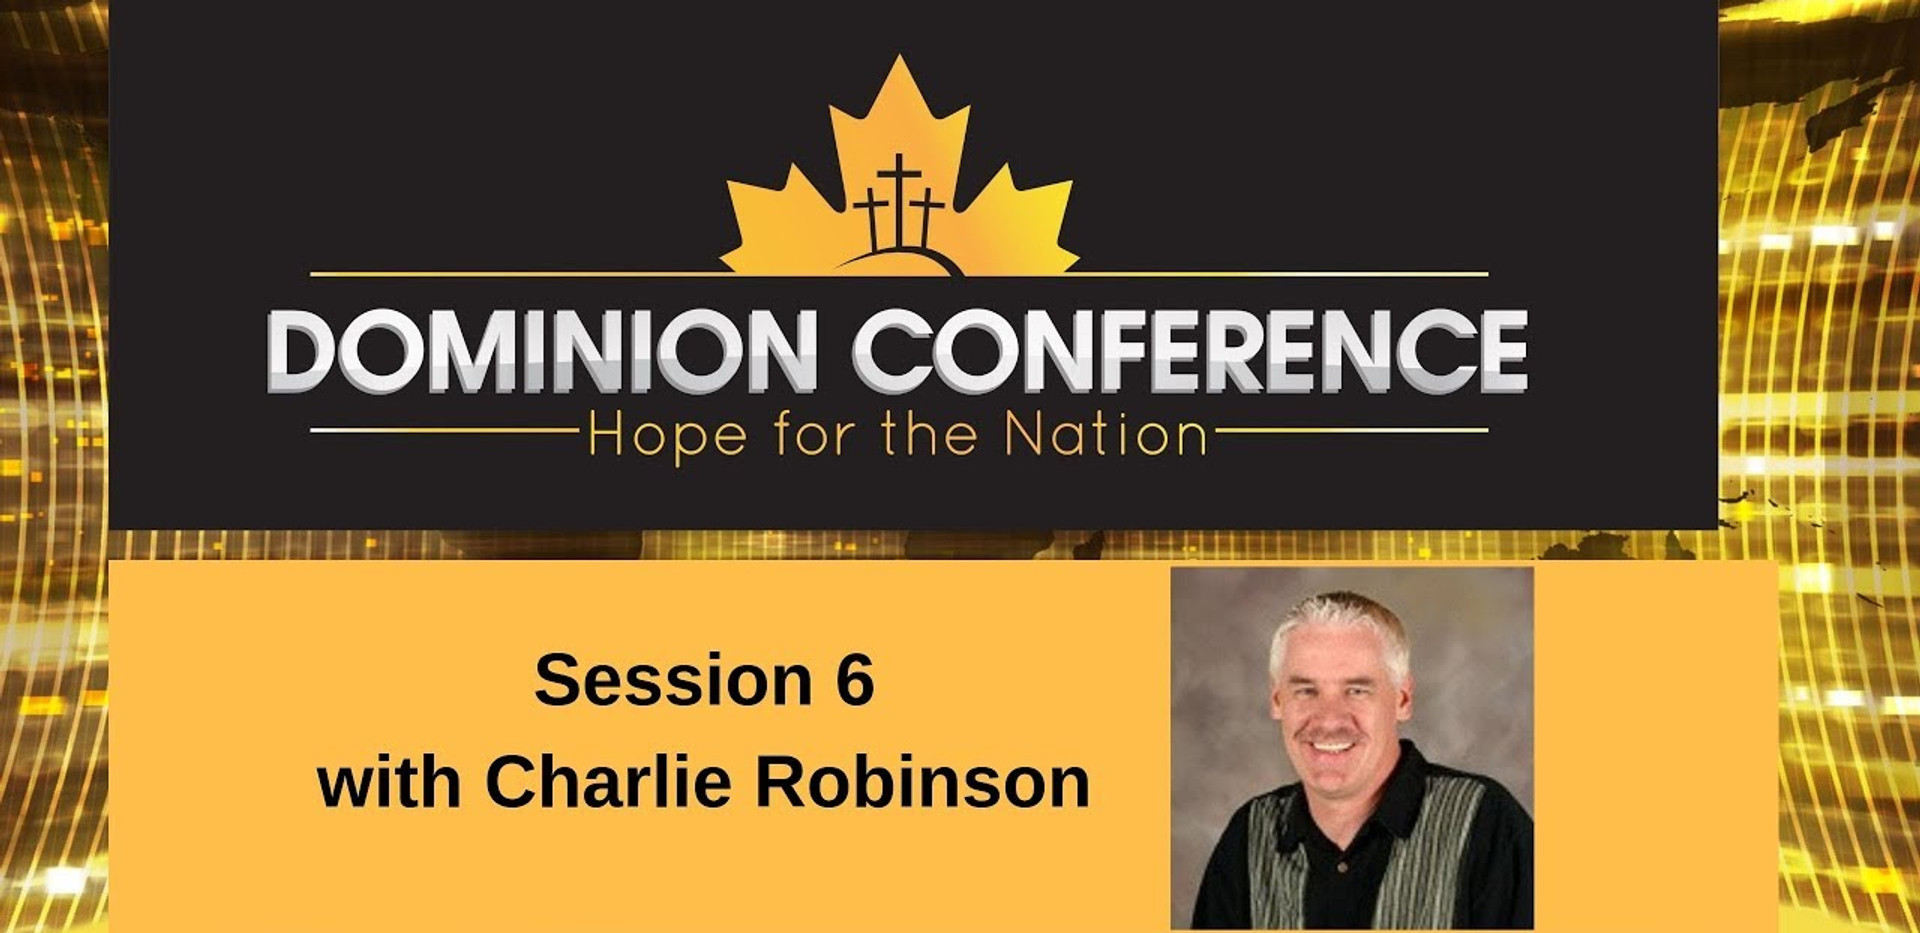 Dominion Conference Lethbridge 2019 | Session Six Part One | Sunday, June 30th 2019 | Charlie Robinson